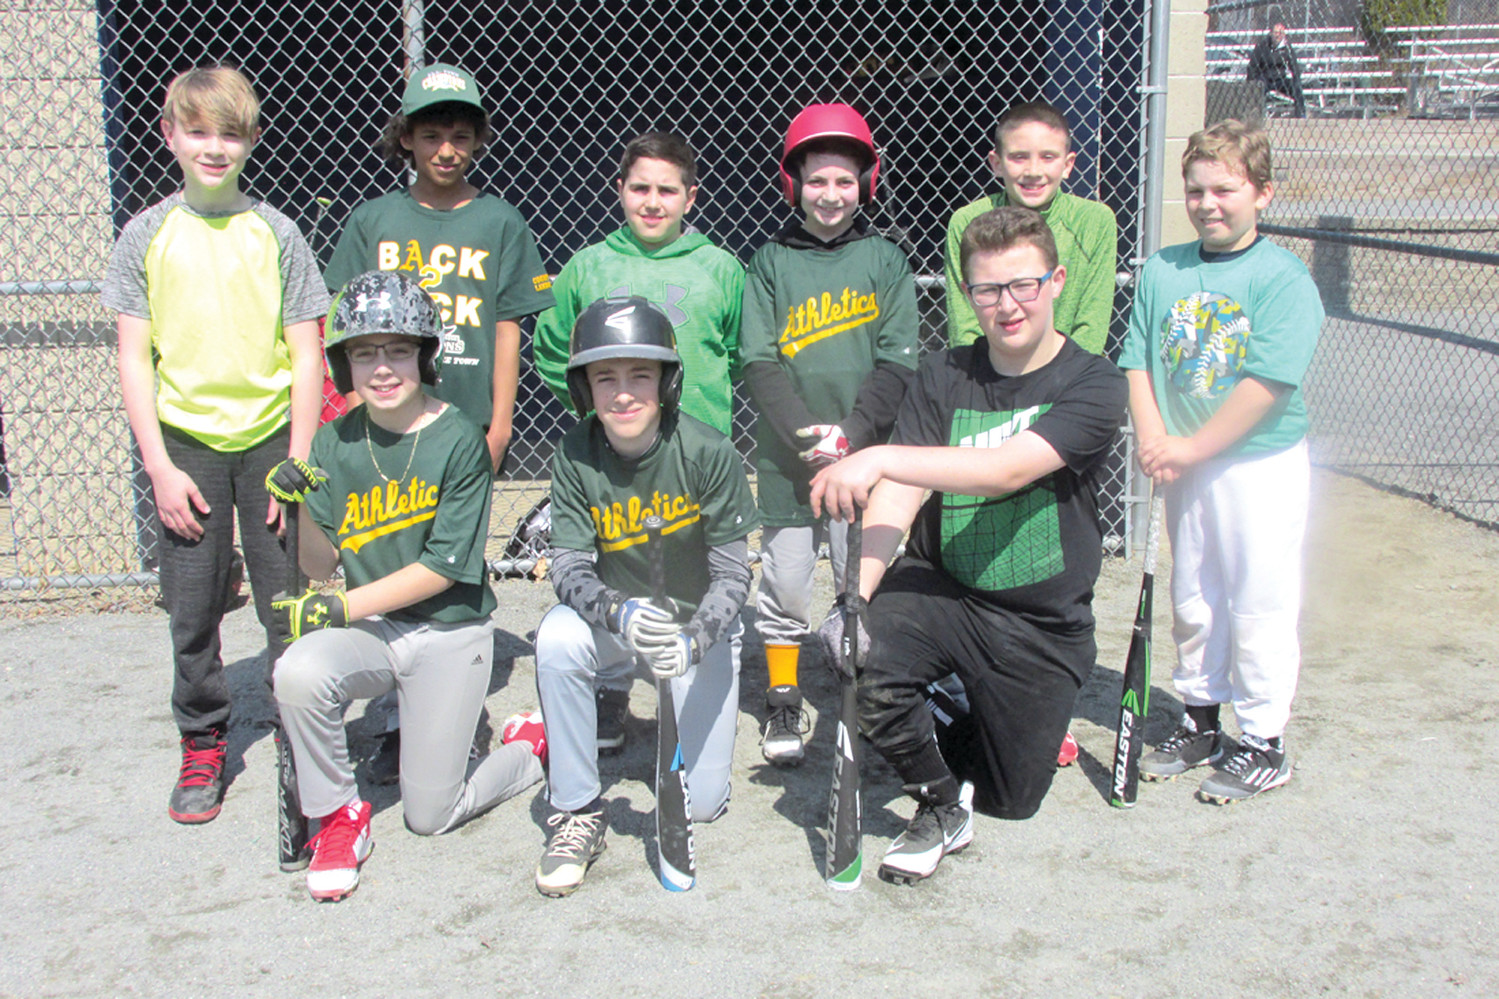 PANNONE'S PACK: The Countyview Landscaping-sponsored Athletics are managed by Ed Pannone and Saturday was gearing up to defend their coveted 2017 Johnston Little League Town Championship at Kennedy Field.